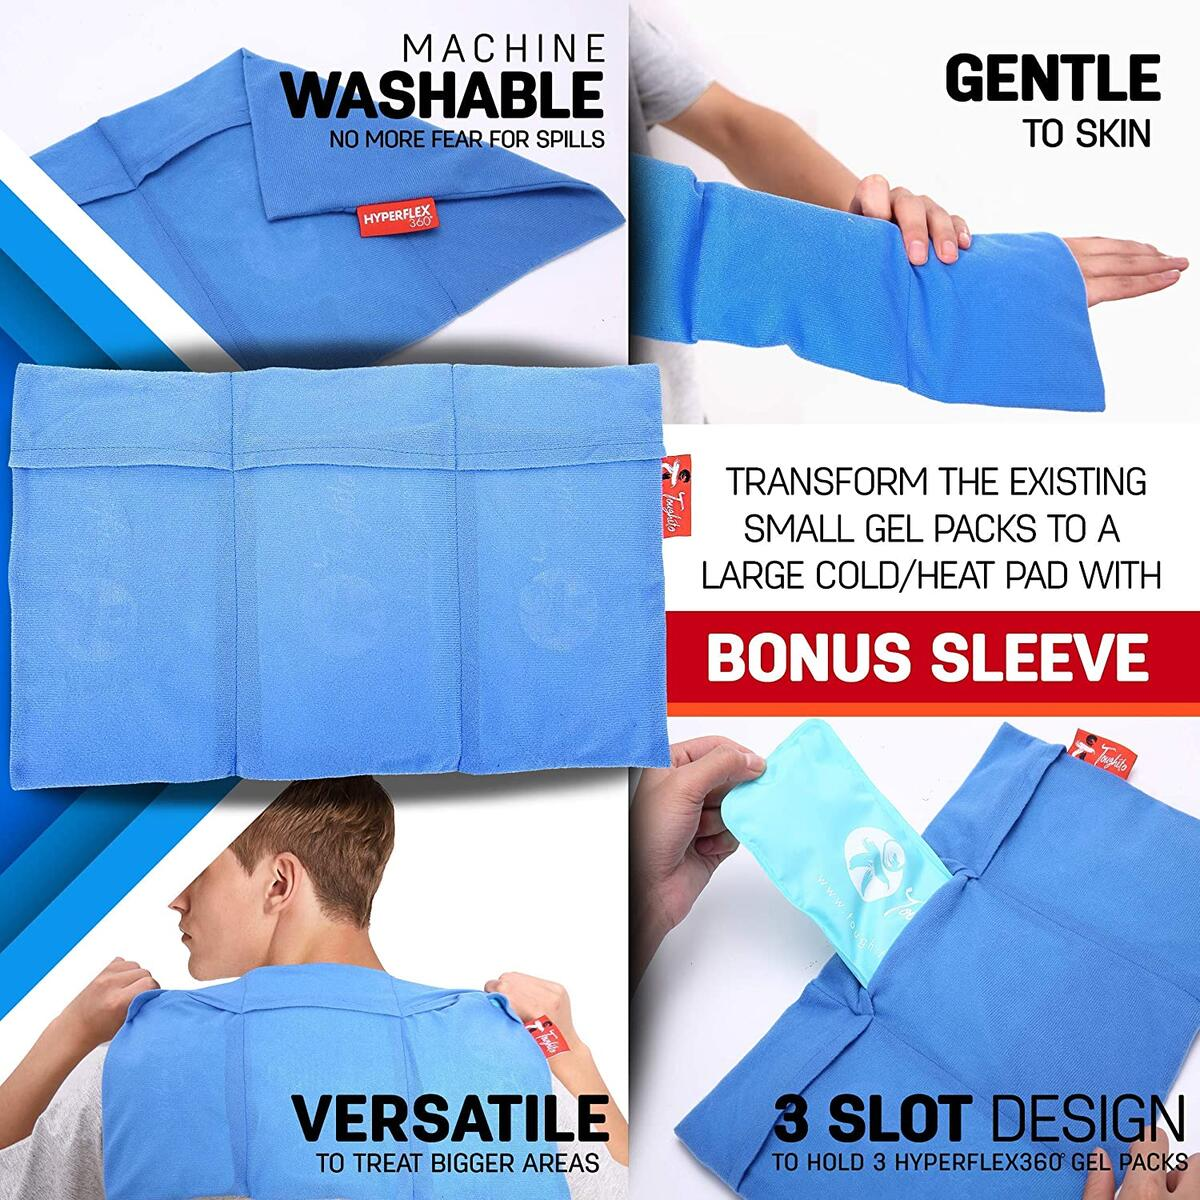 TOUGHITO Hot & Cold Knee Ice Pack Wrap – Compression Knee Wrap for Knee Pain, Swelling, and Recovery with 3 Reusable Hot/Cold Gel Packs with Ice Pack Sleeve – Comfy Ice Pack Wrap with Knee Support